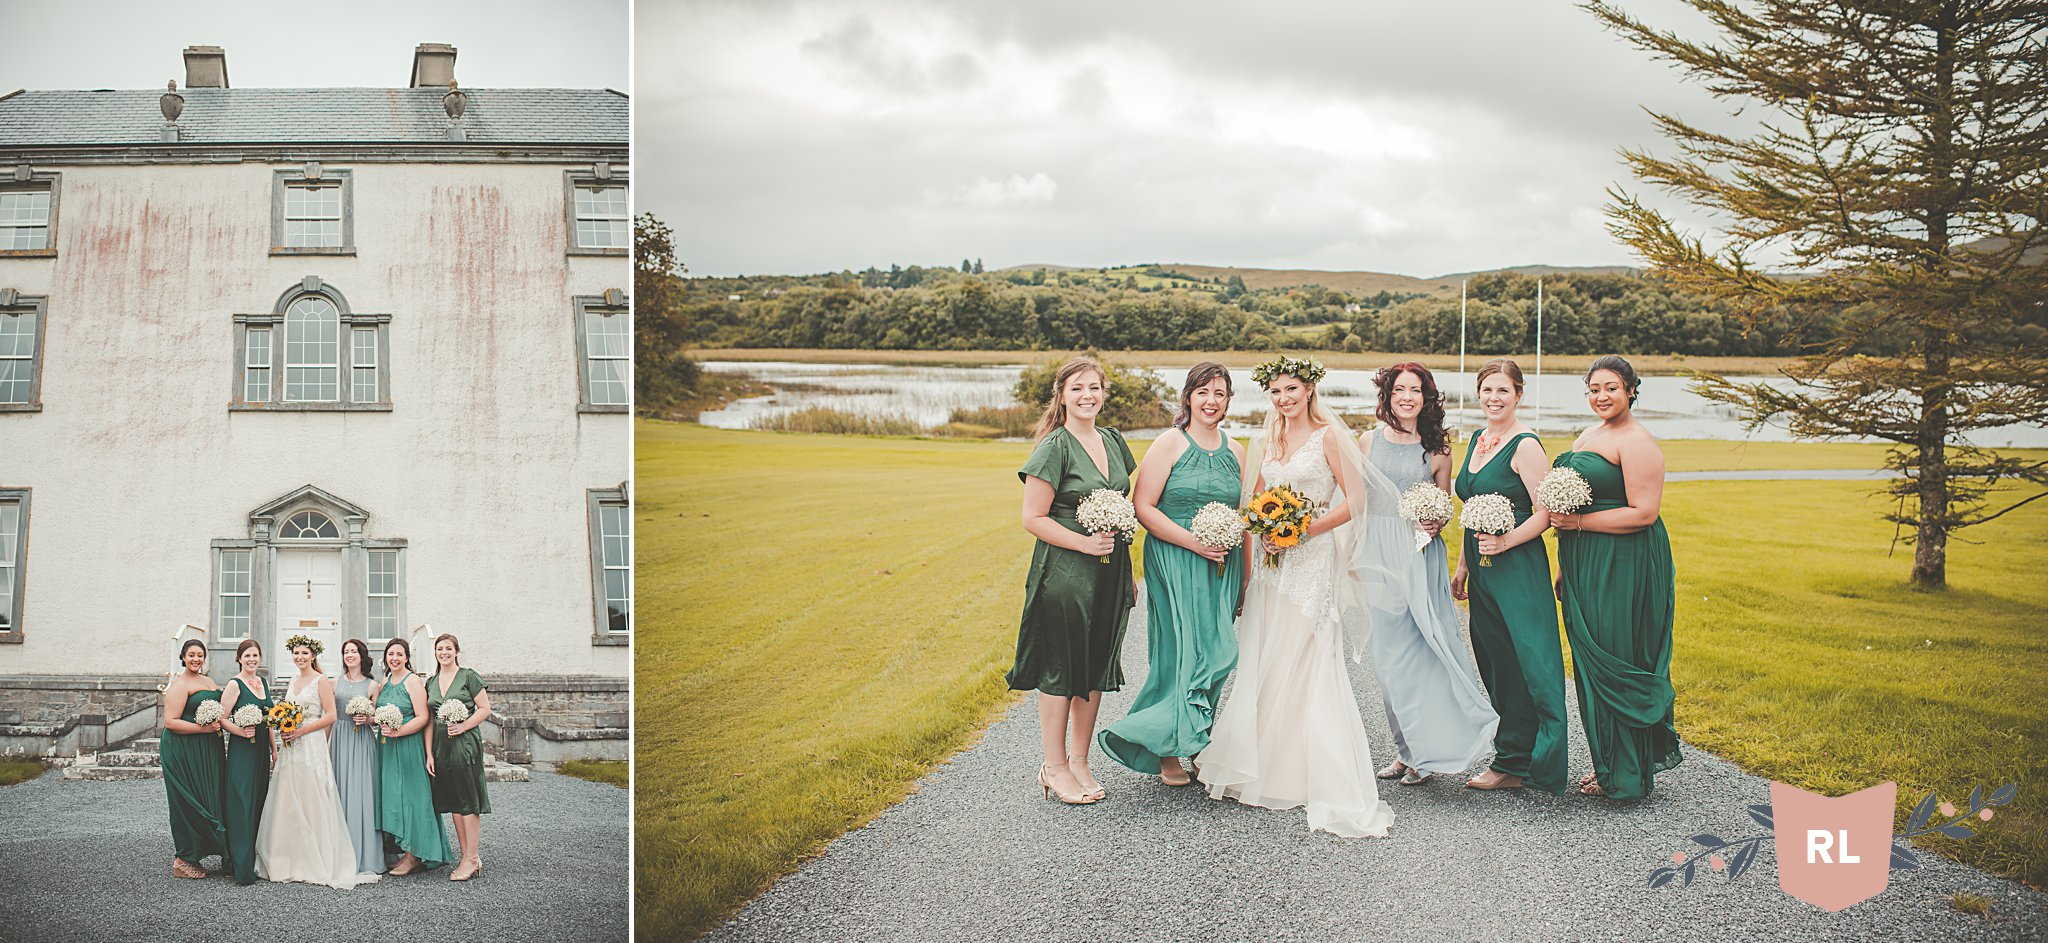 RossCastleWedding_Ireland_1015.jpg